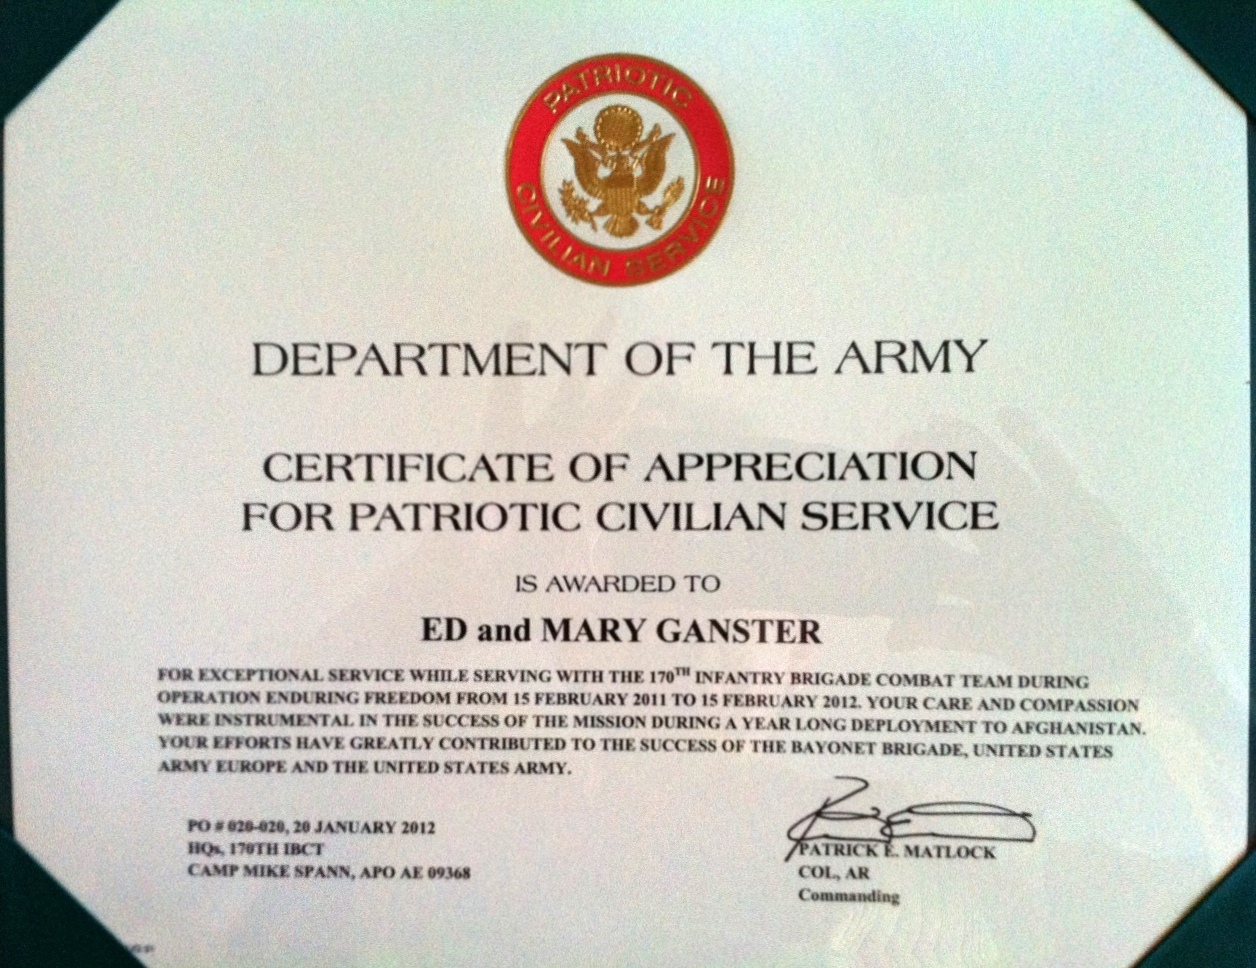 army certificate of appreciation template – Army Certificate of Achievement Template